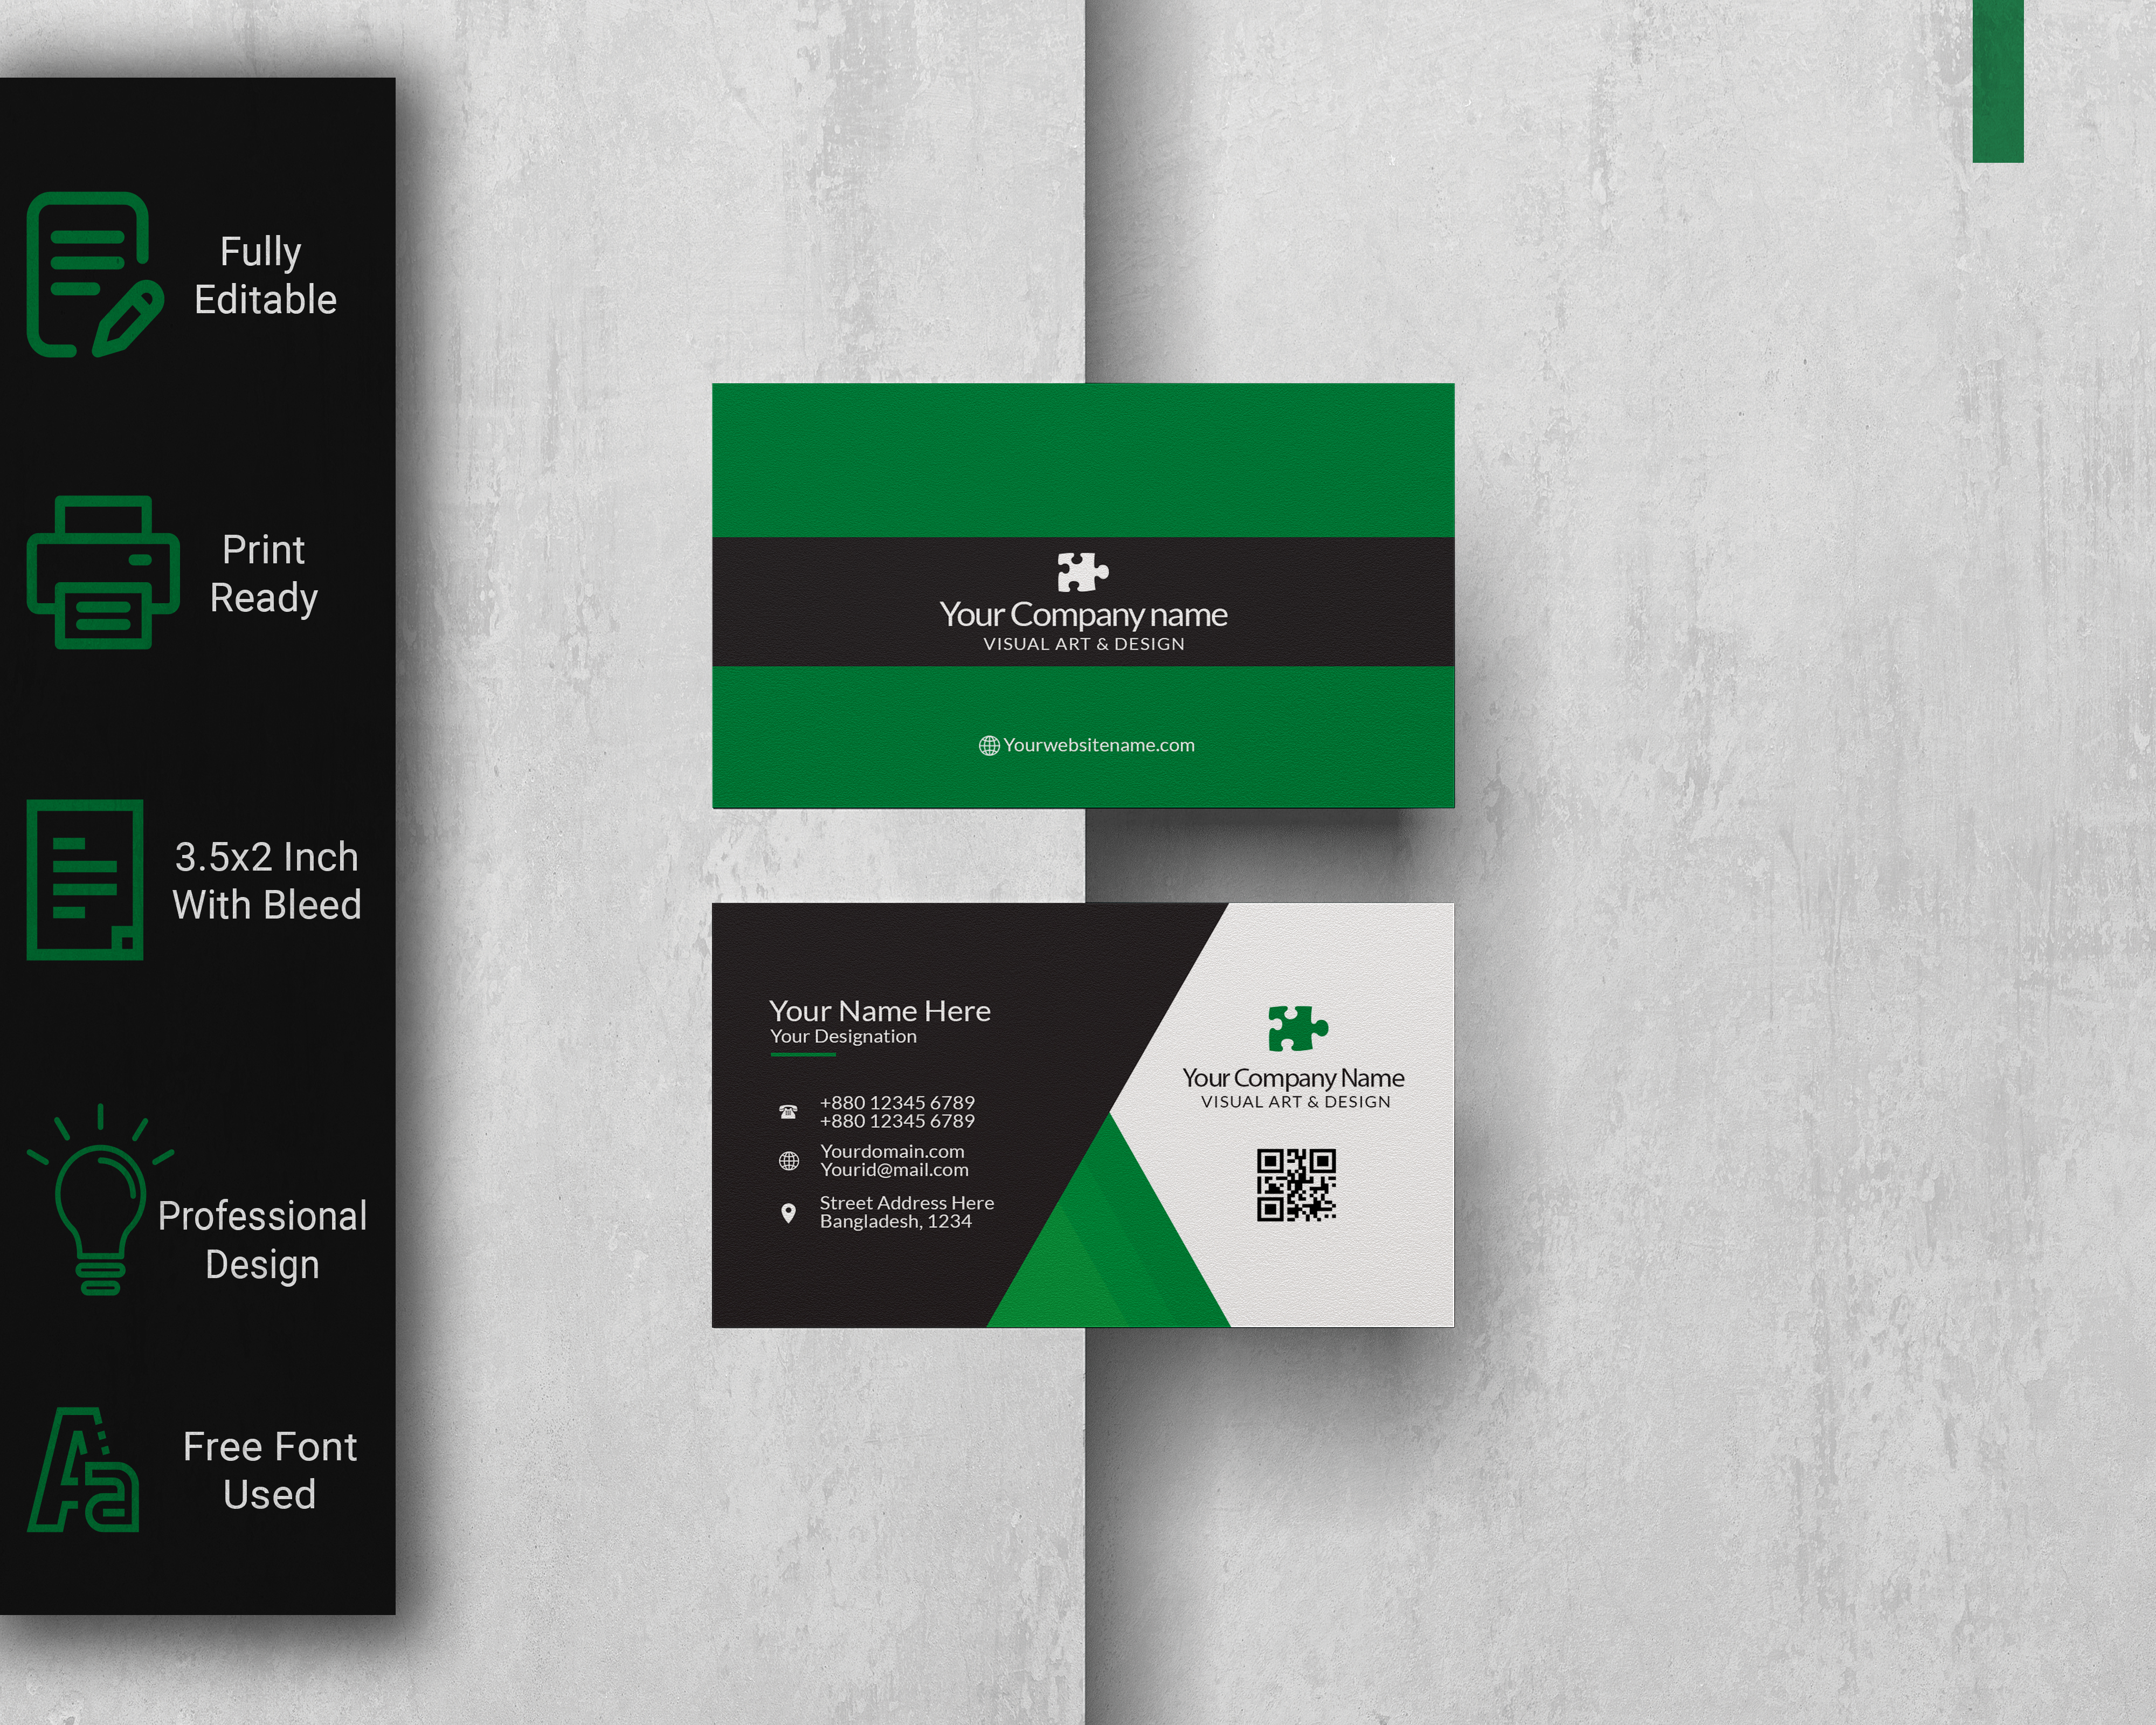 I Will Design Professional and Premium Business Card With Two Concept